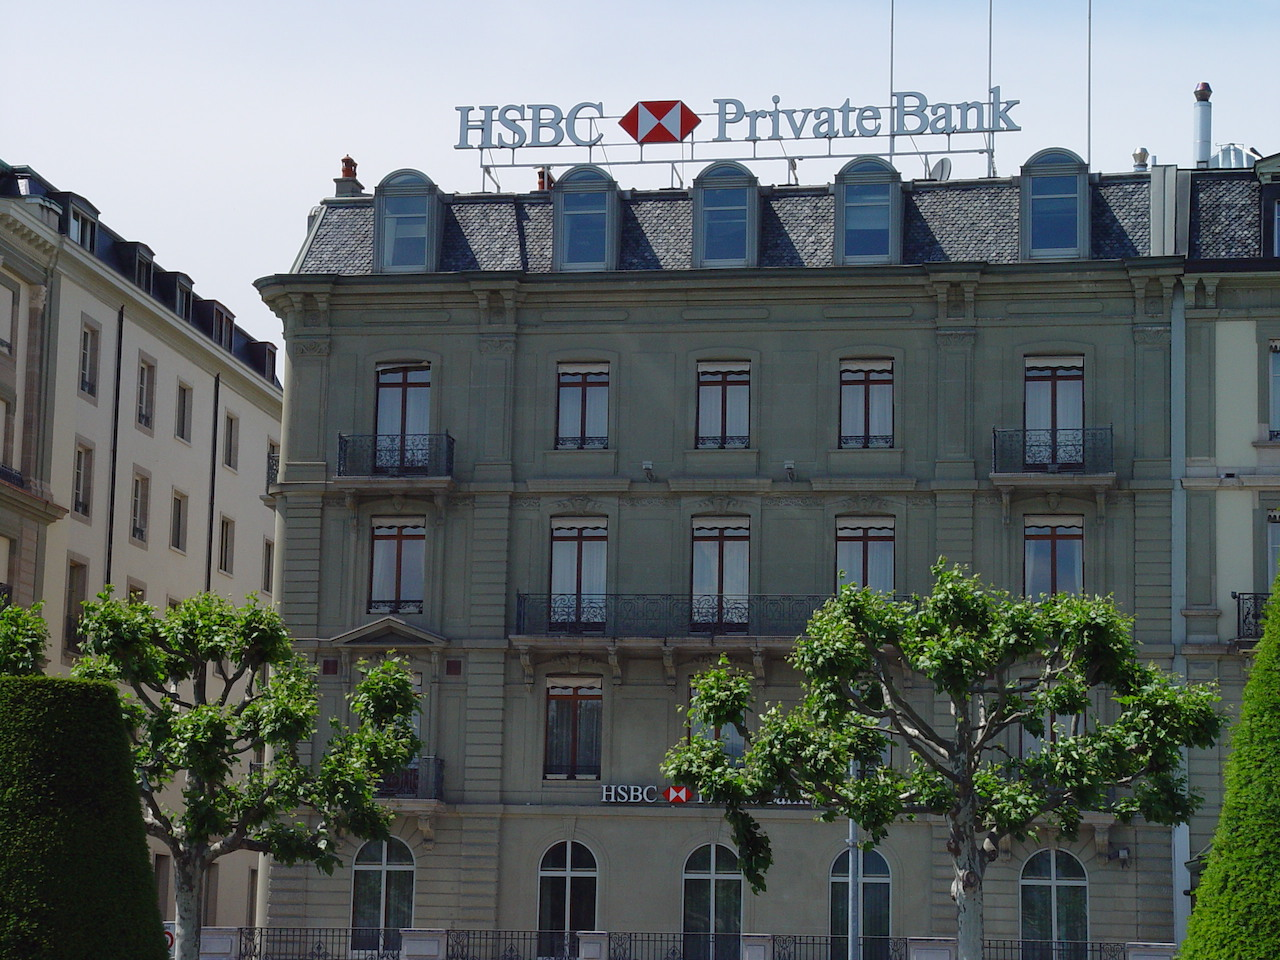 An HSBC private bank in Geneva (photo by Beat Strasser/Flickr)